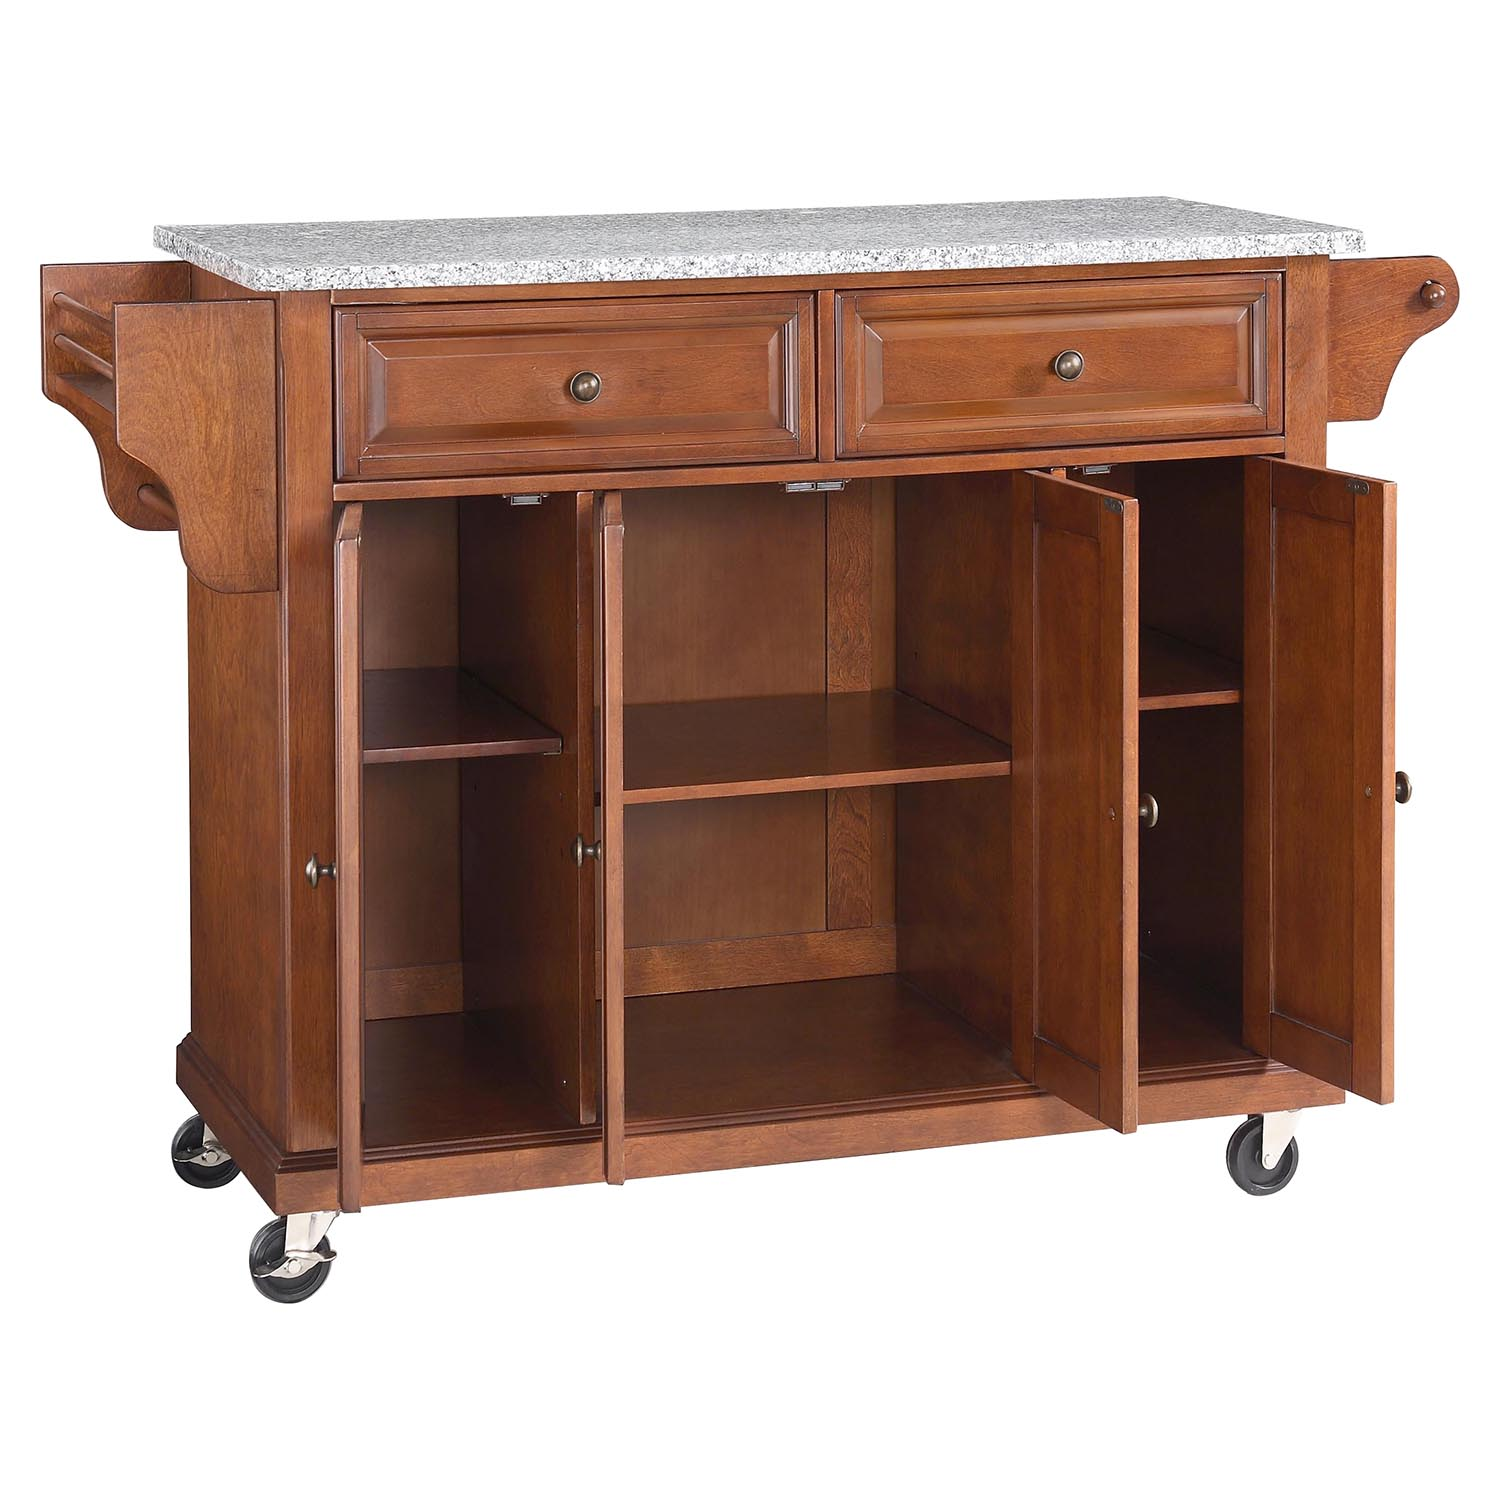 Solid Granite Top Kitchen Cart/Island - Casters, Classic Cherry - CROS-KF30003ECH